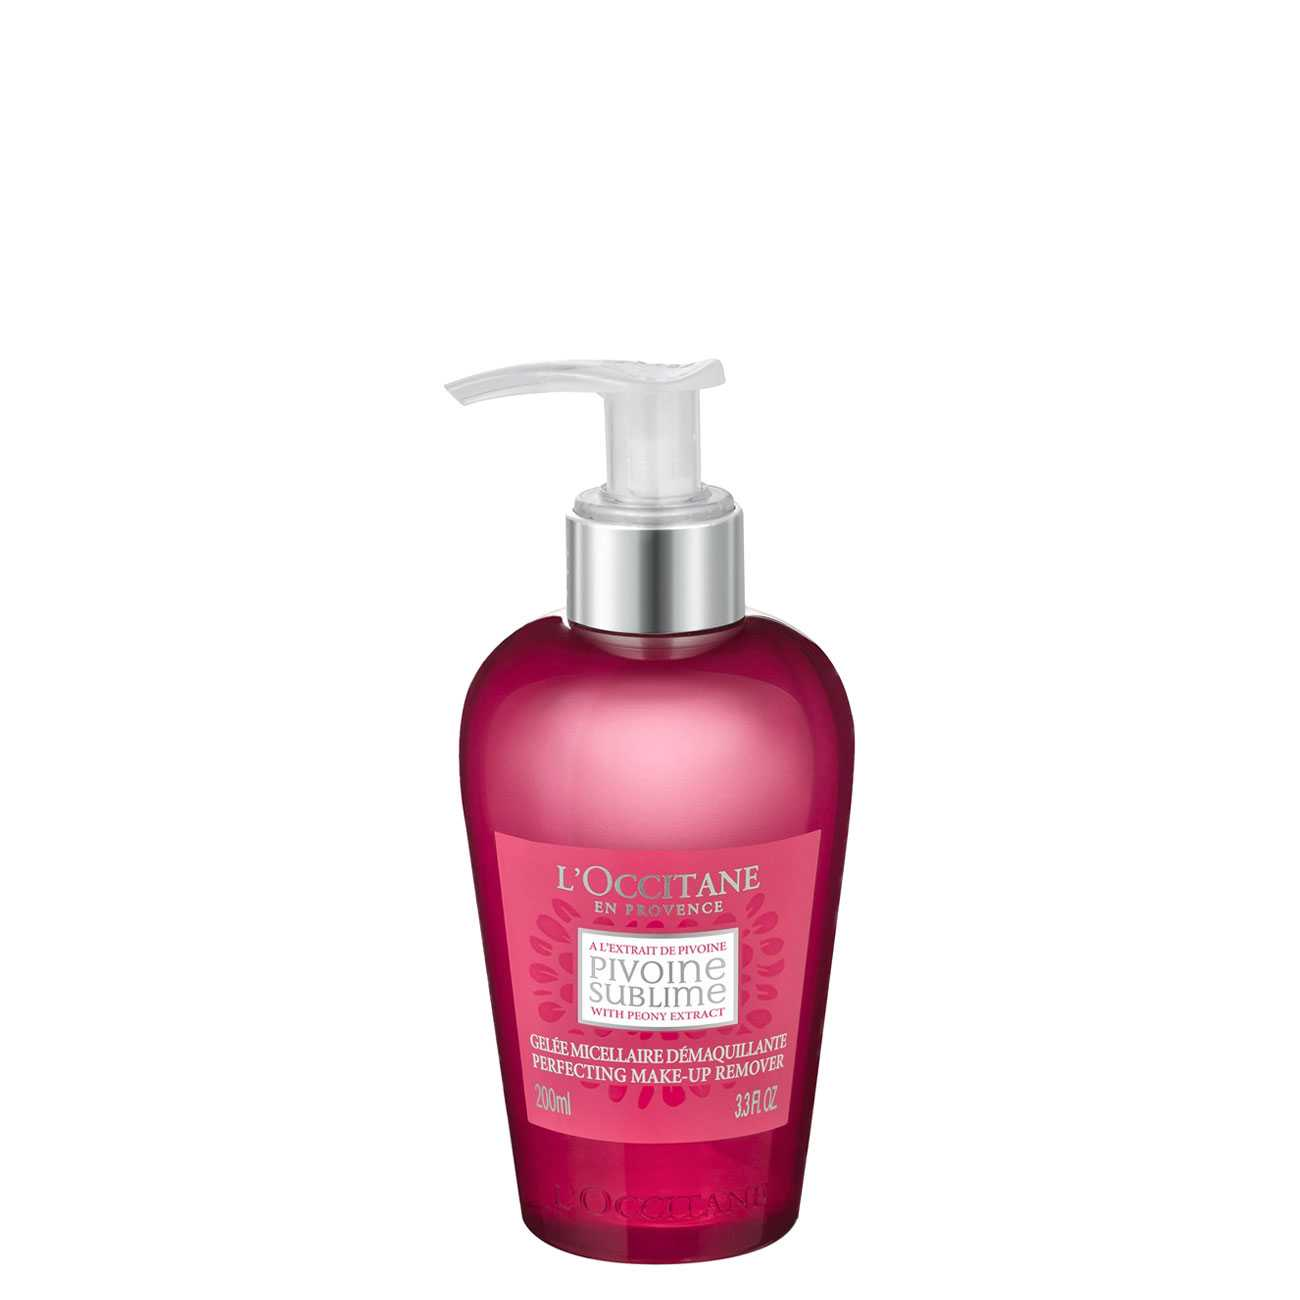 PIVOINE SUBLIME PERFECTING MAKE-UP REMOVER 200 ML